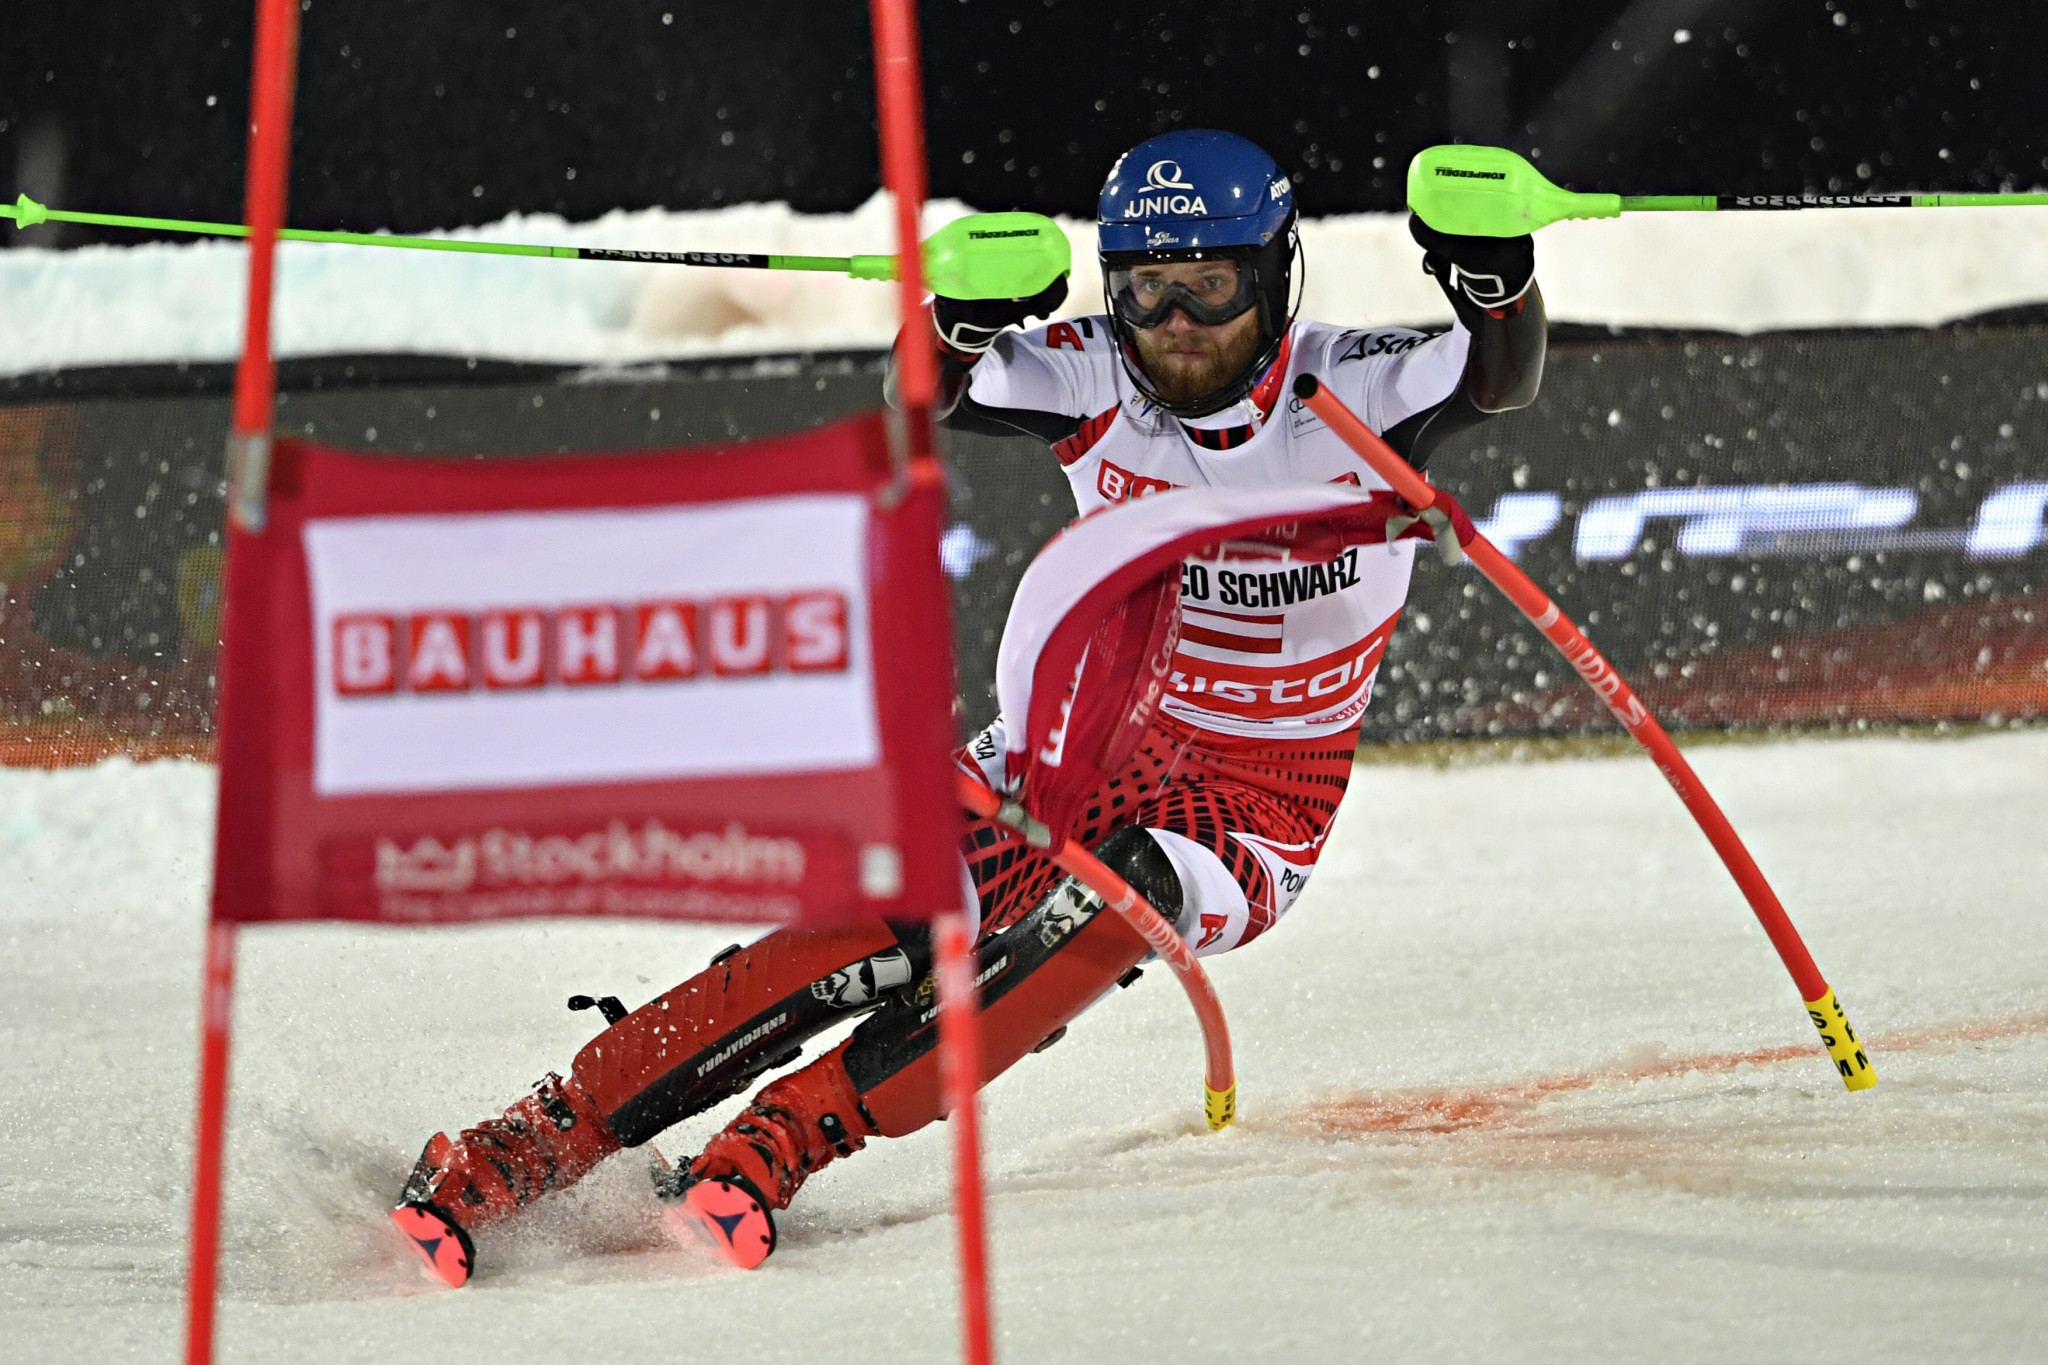 Austria's Marco Schwarz is the current leader in the Alpine combined category in the FIS World Cup Alpine Skiing ©Getty Images